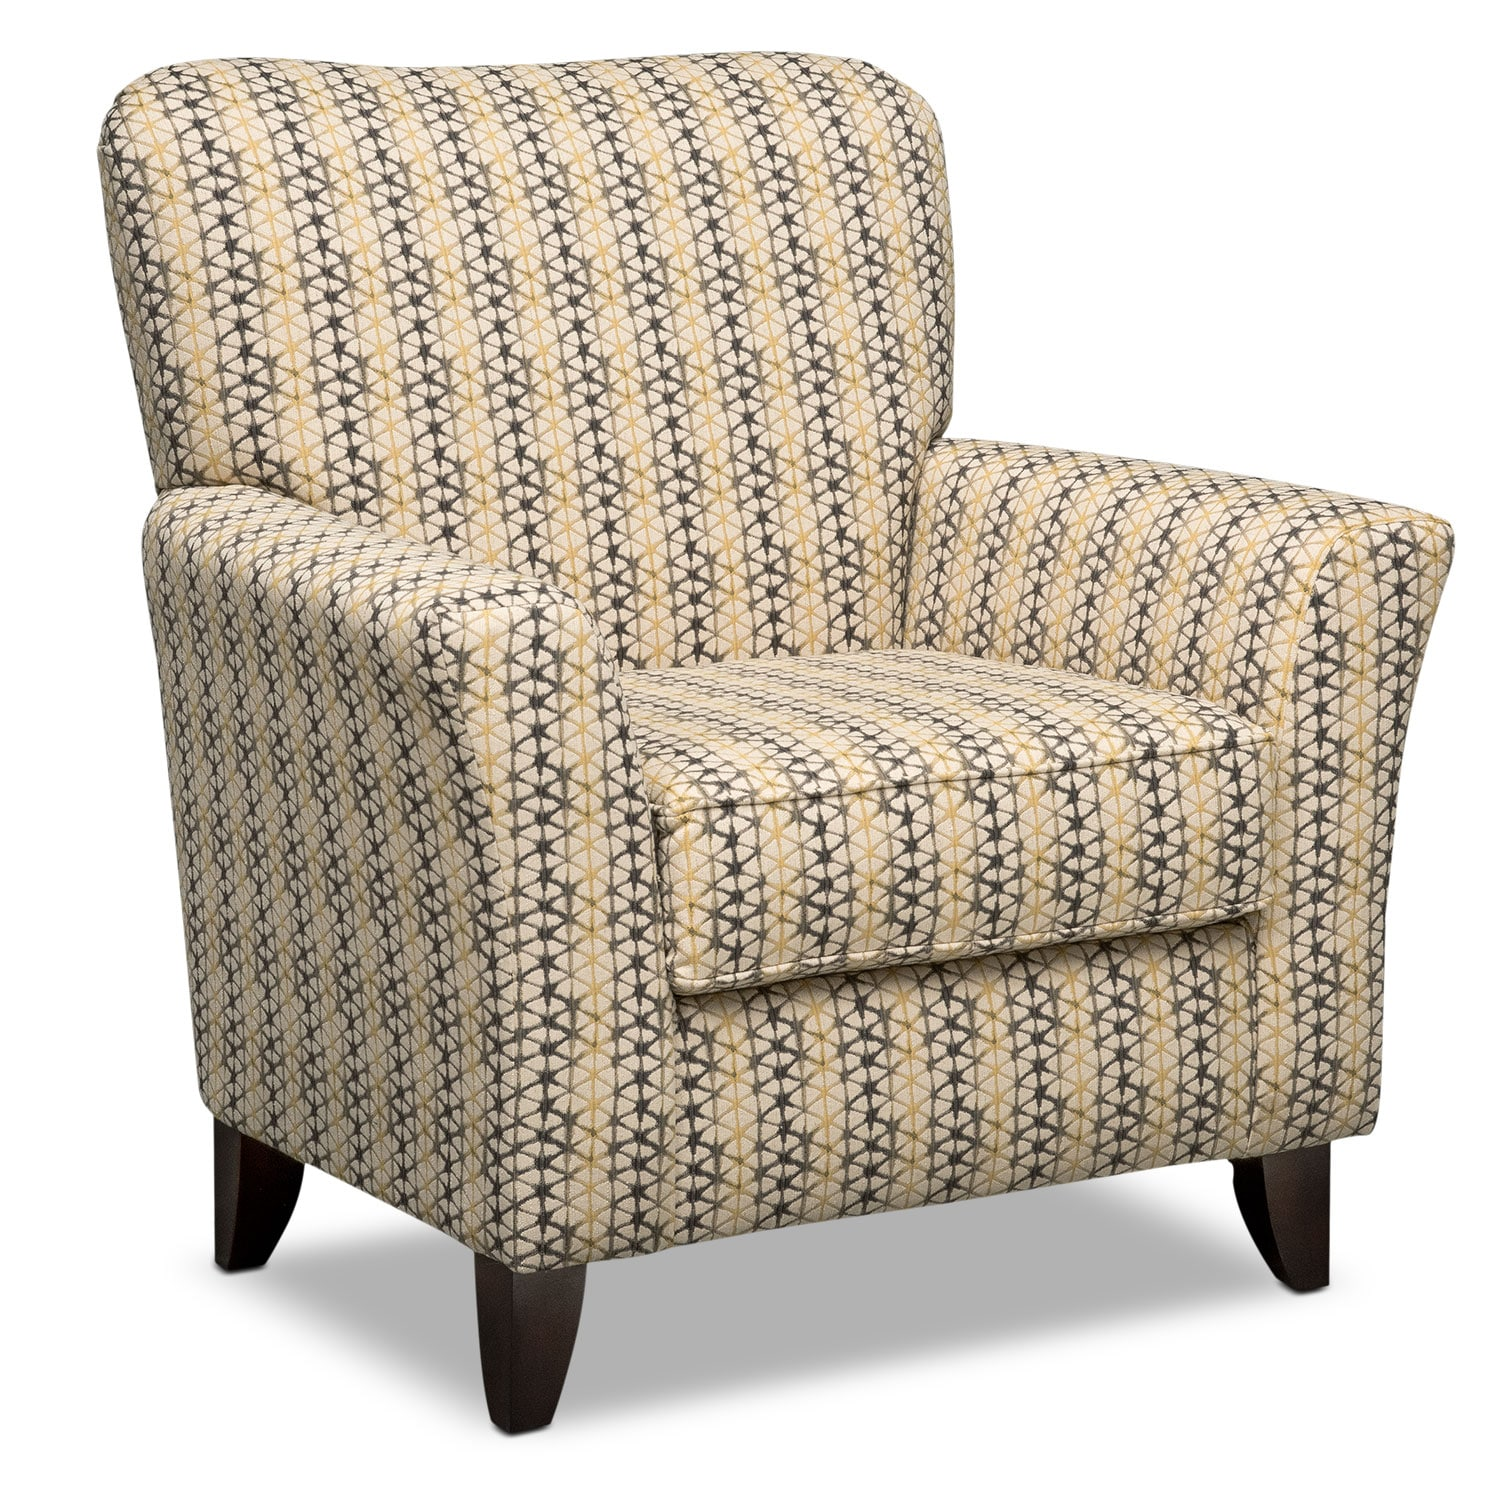 Living Room Furniture - Bryden Accent Chair - Beige